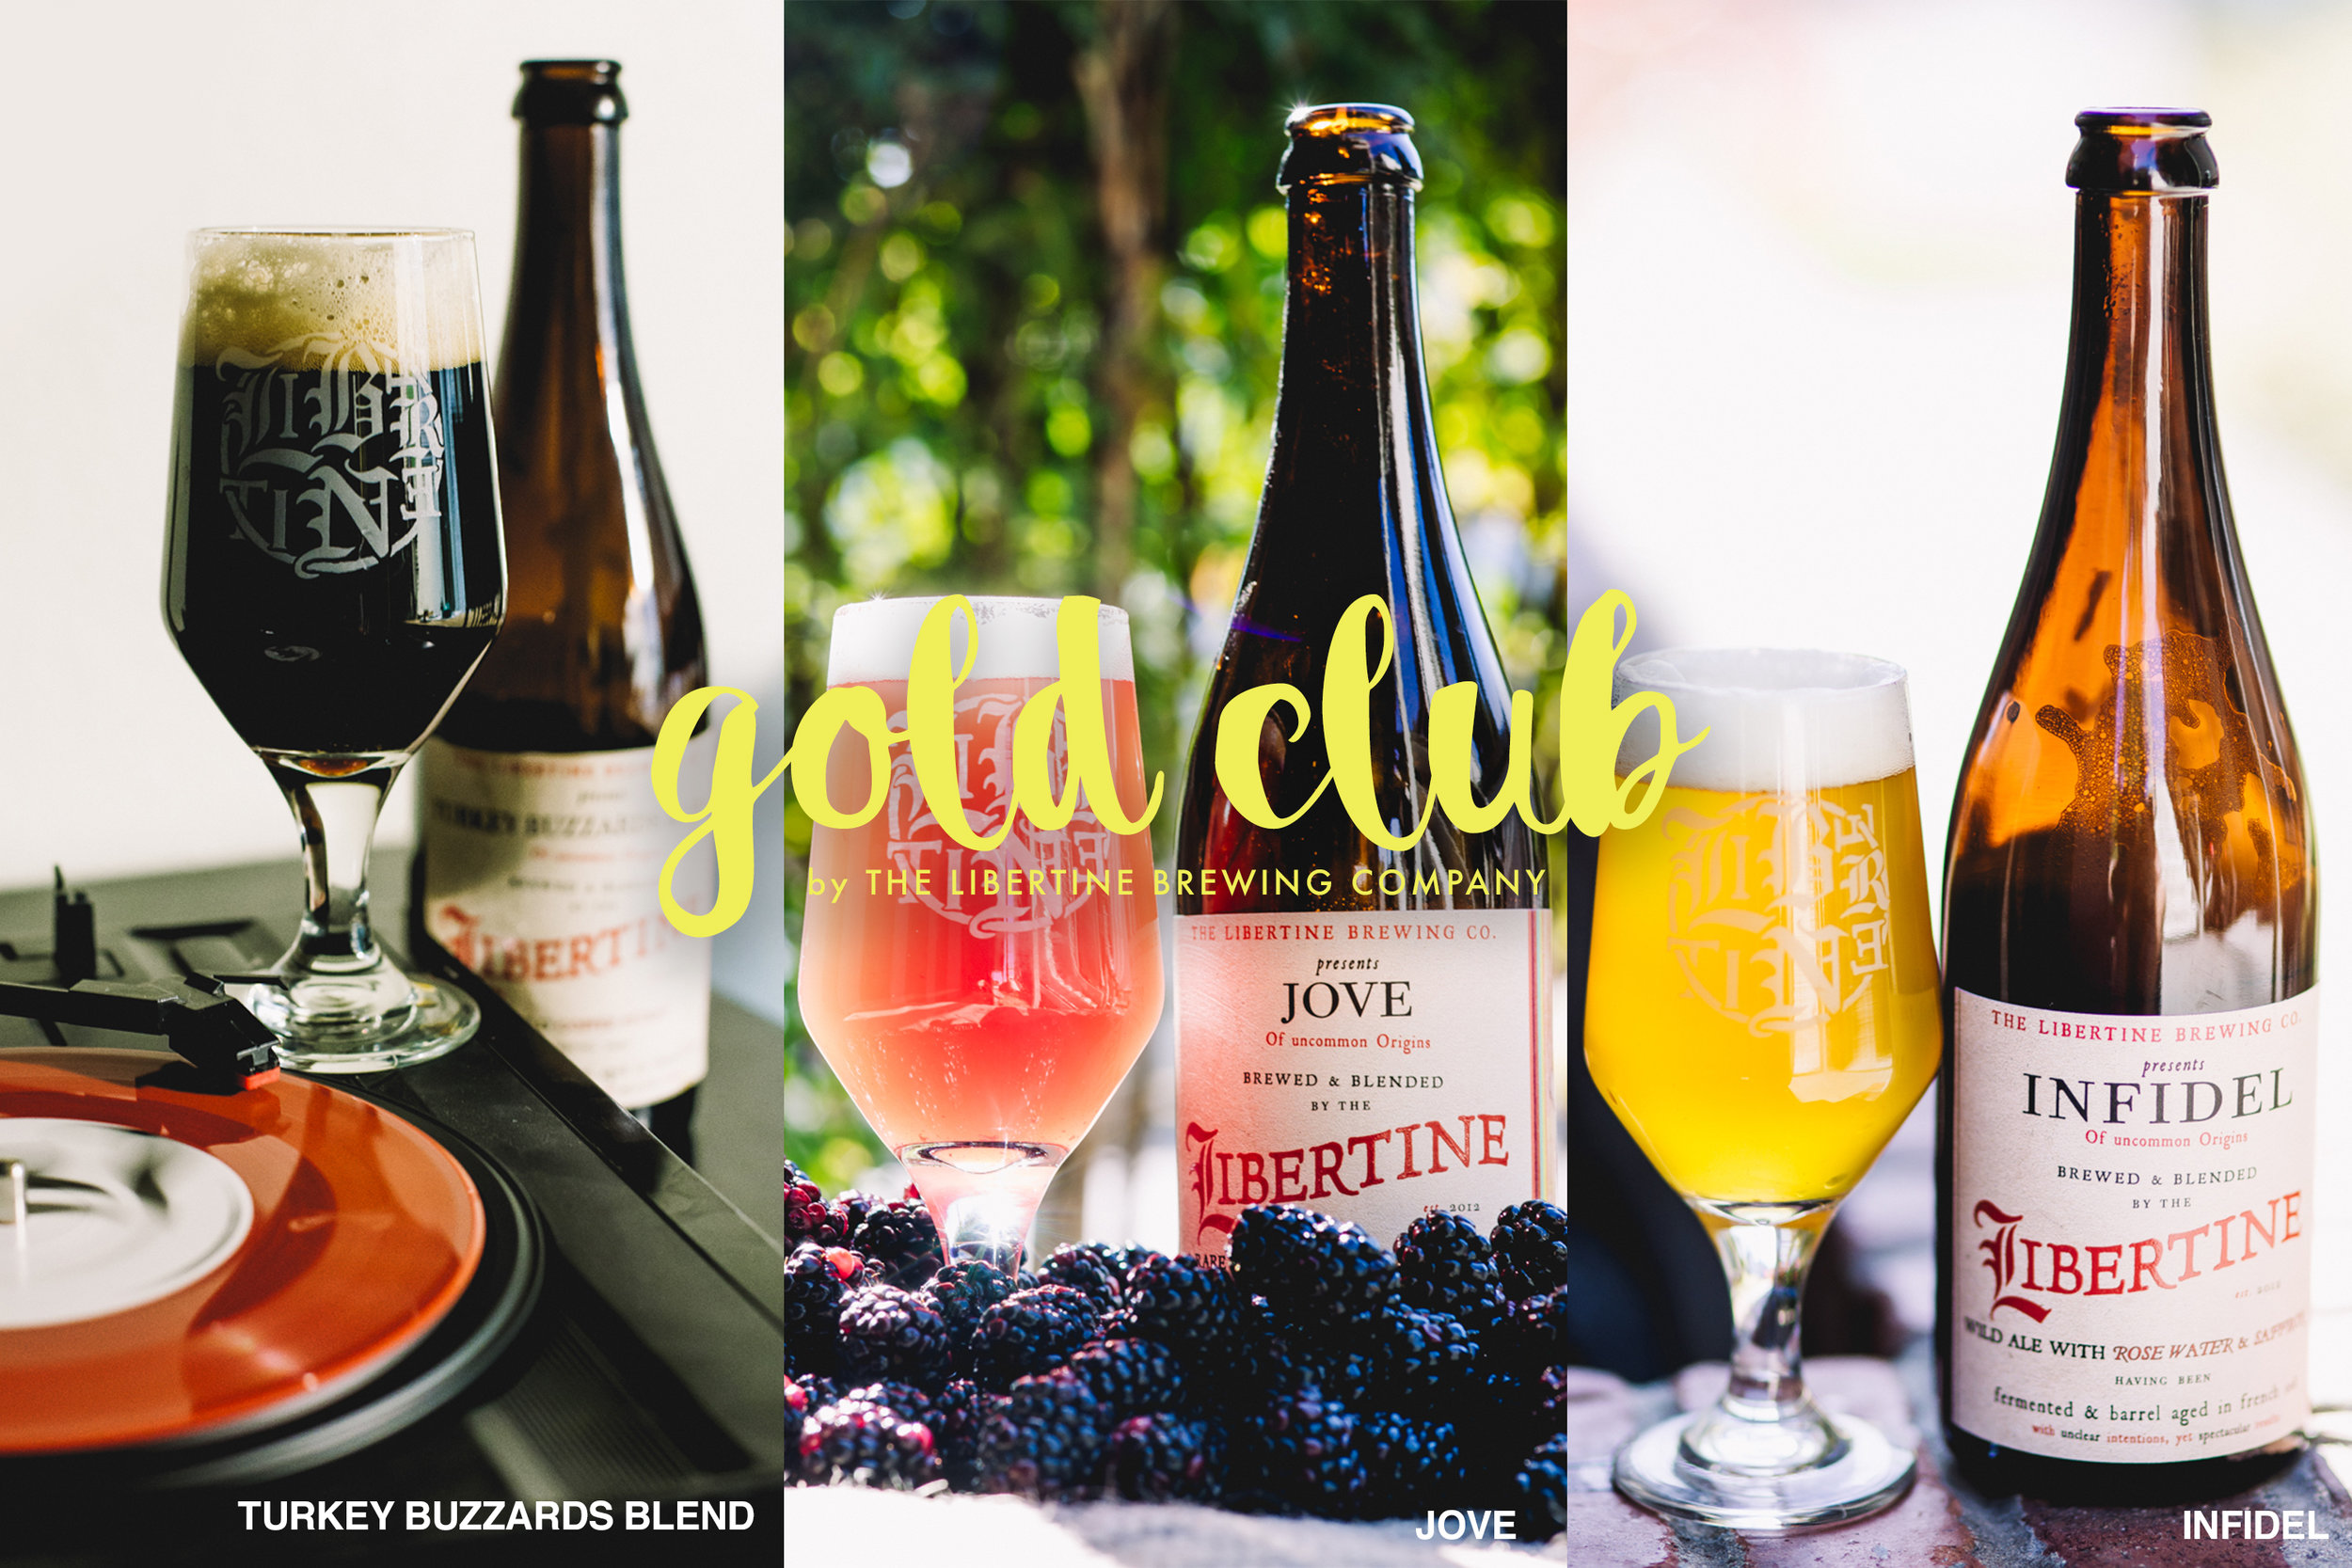 The Gold Club will feature Turkey Buzzards Blend, Jove, Infidel in the first shipment on December 1. The Libertine Bottle Club will focus on sending you unique beers every quarter.